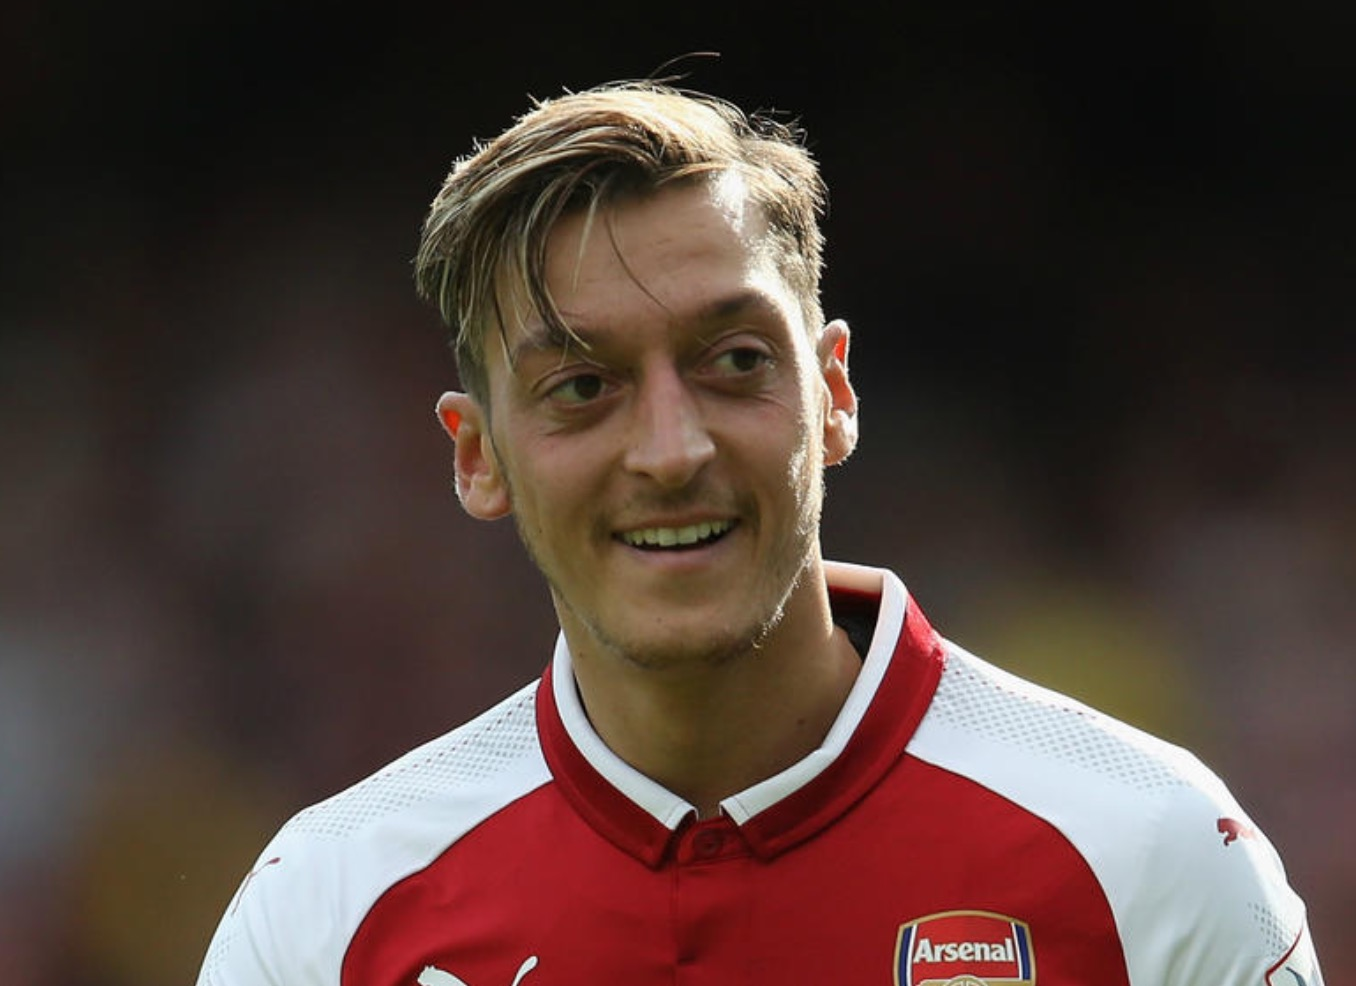 Mesut Ozil Haircut Name 2018 Hairline Pictures New